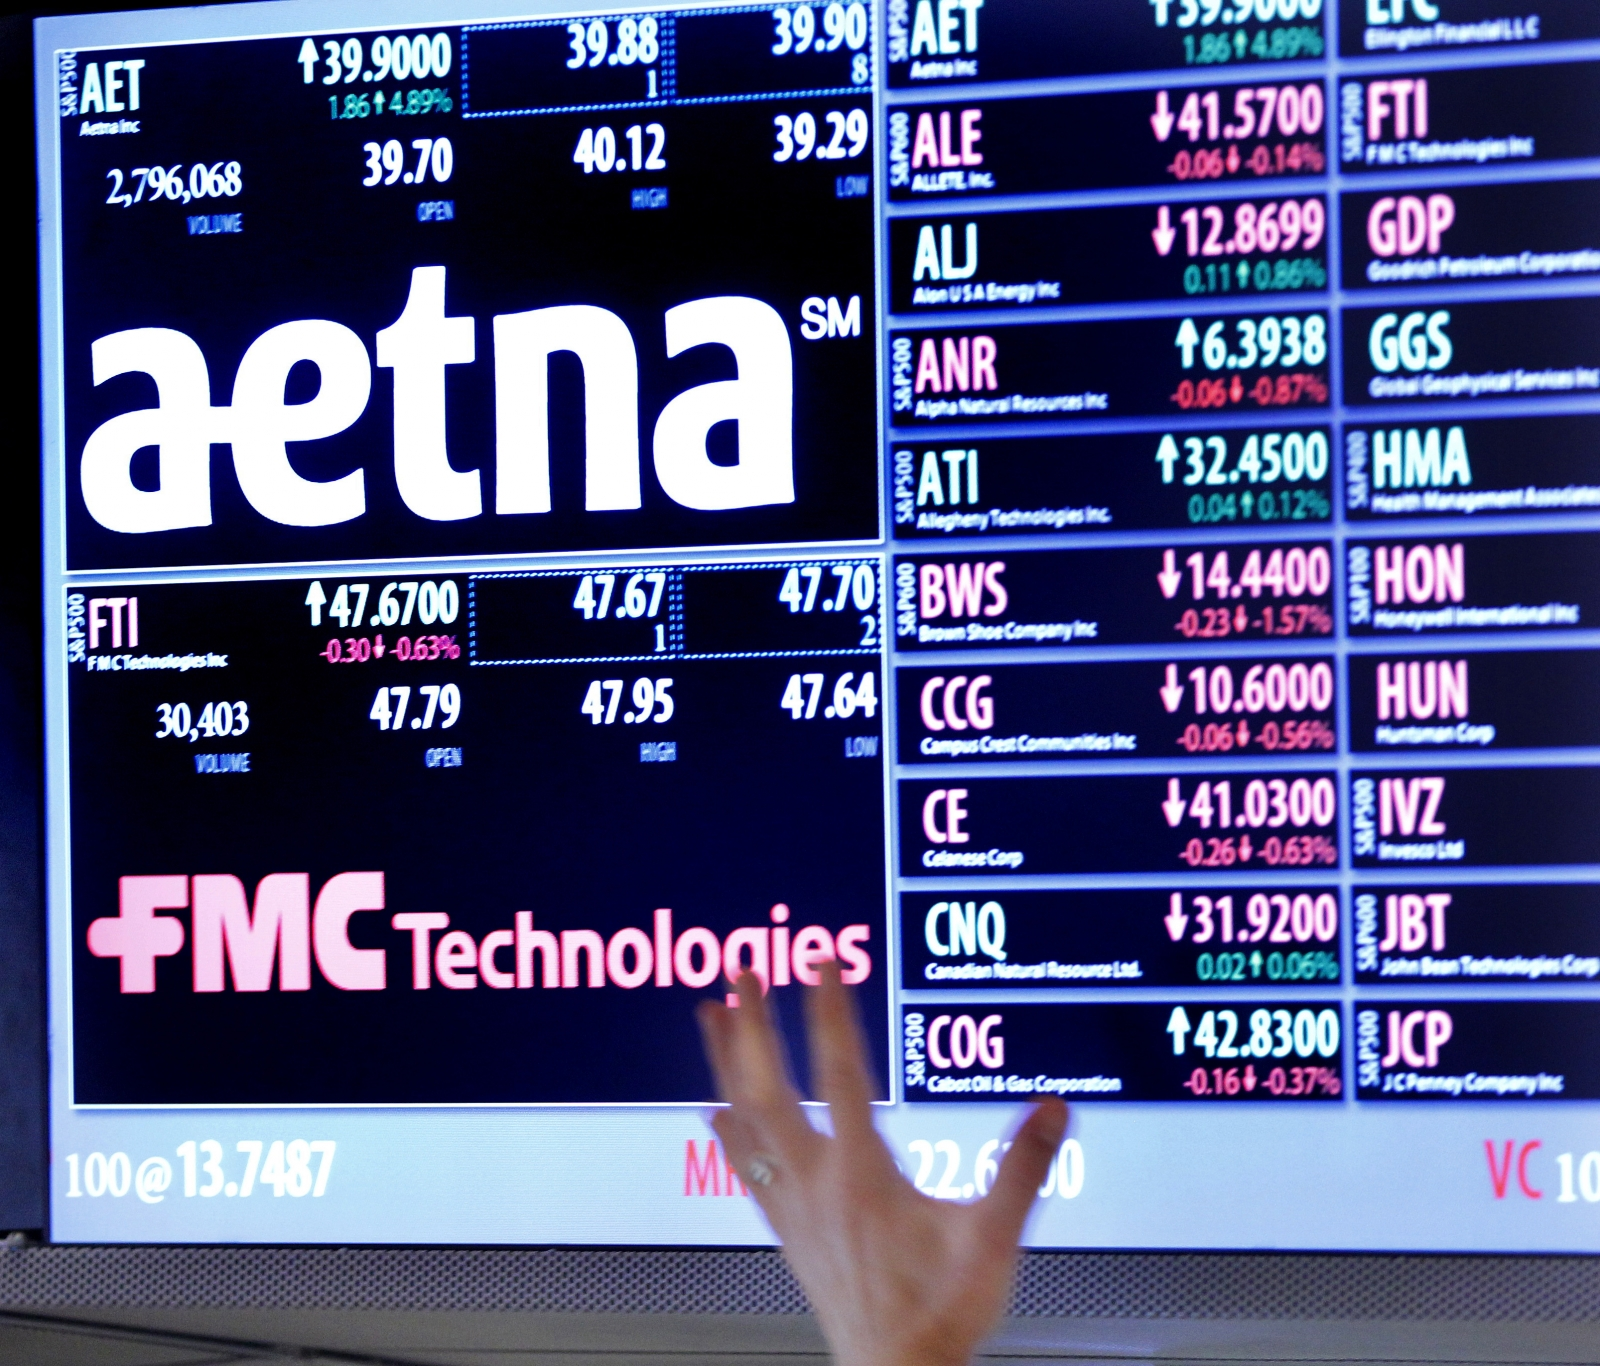 health insurer Aetna